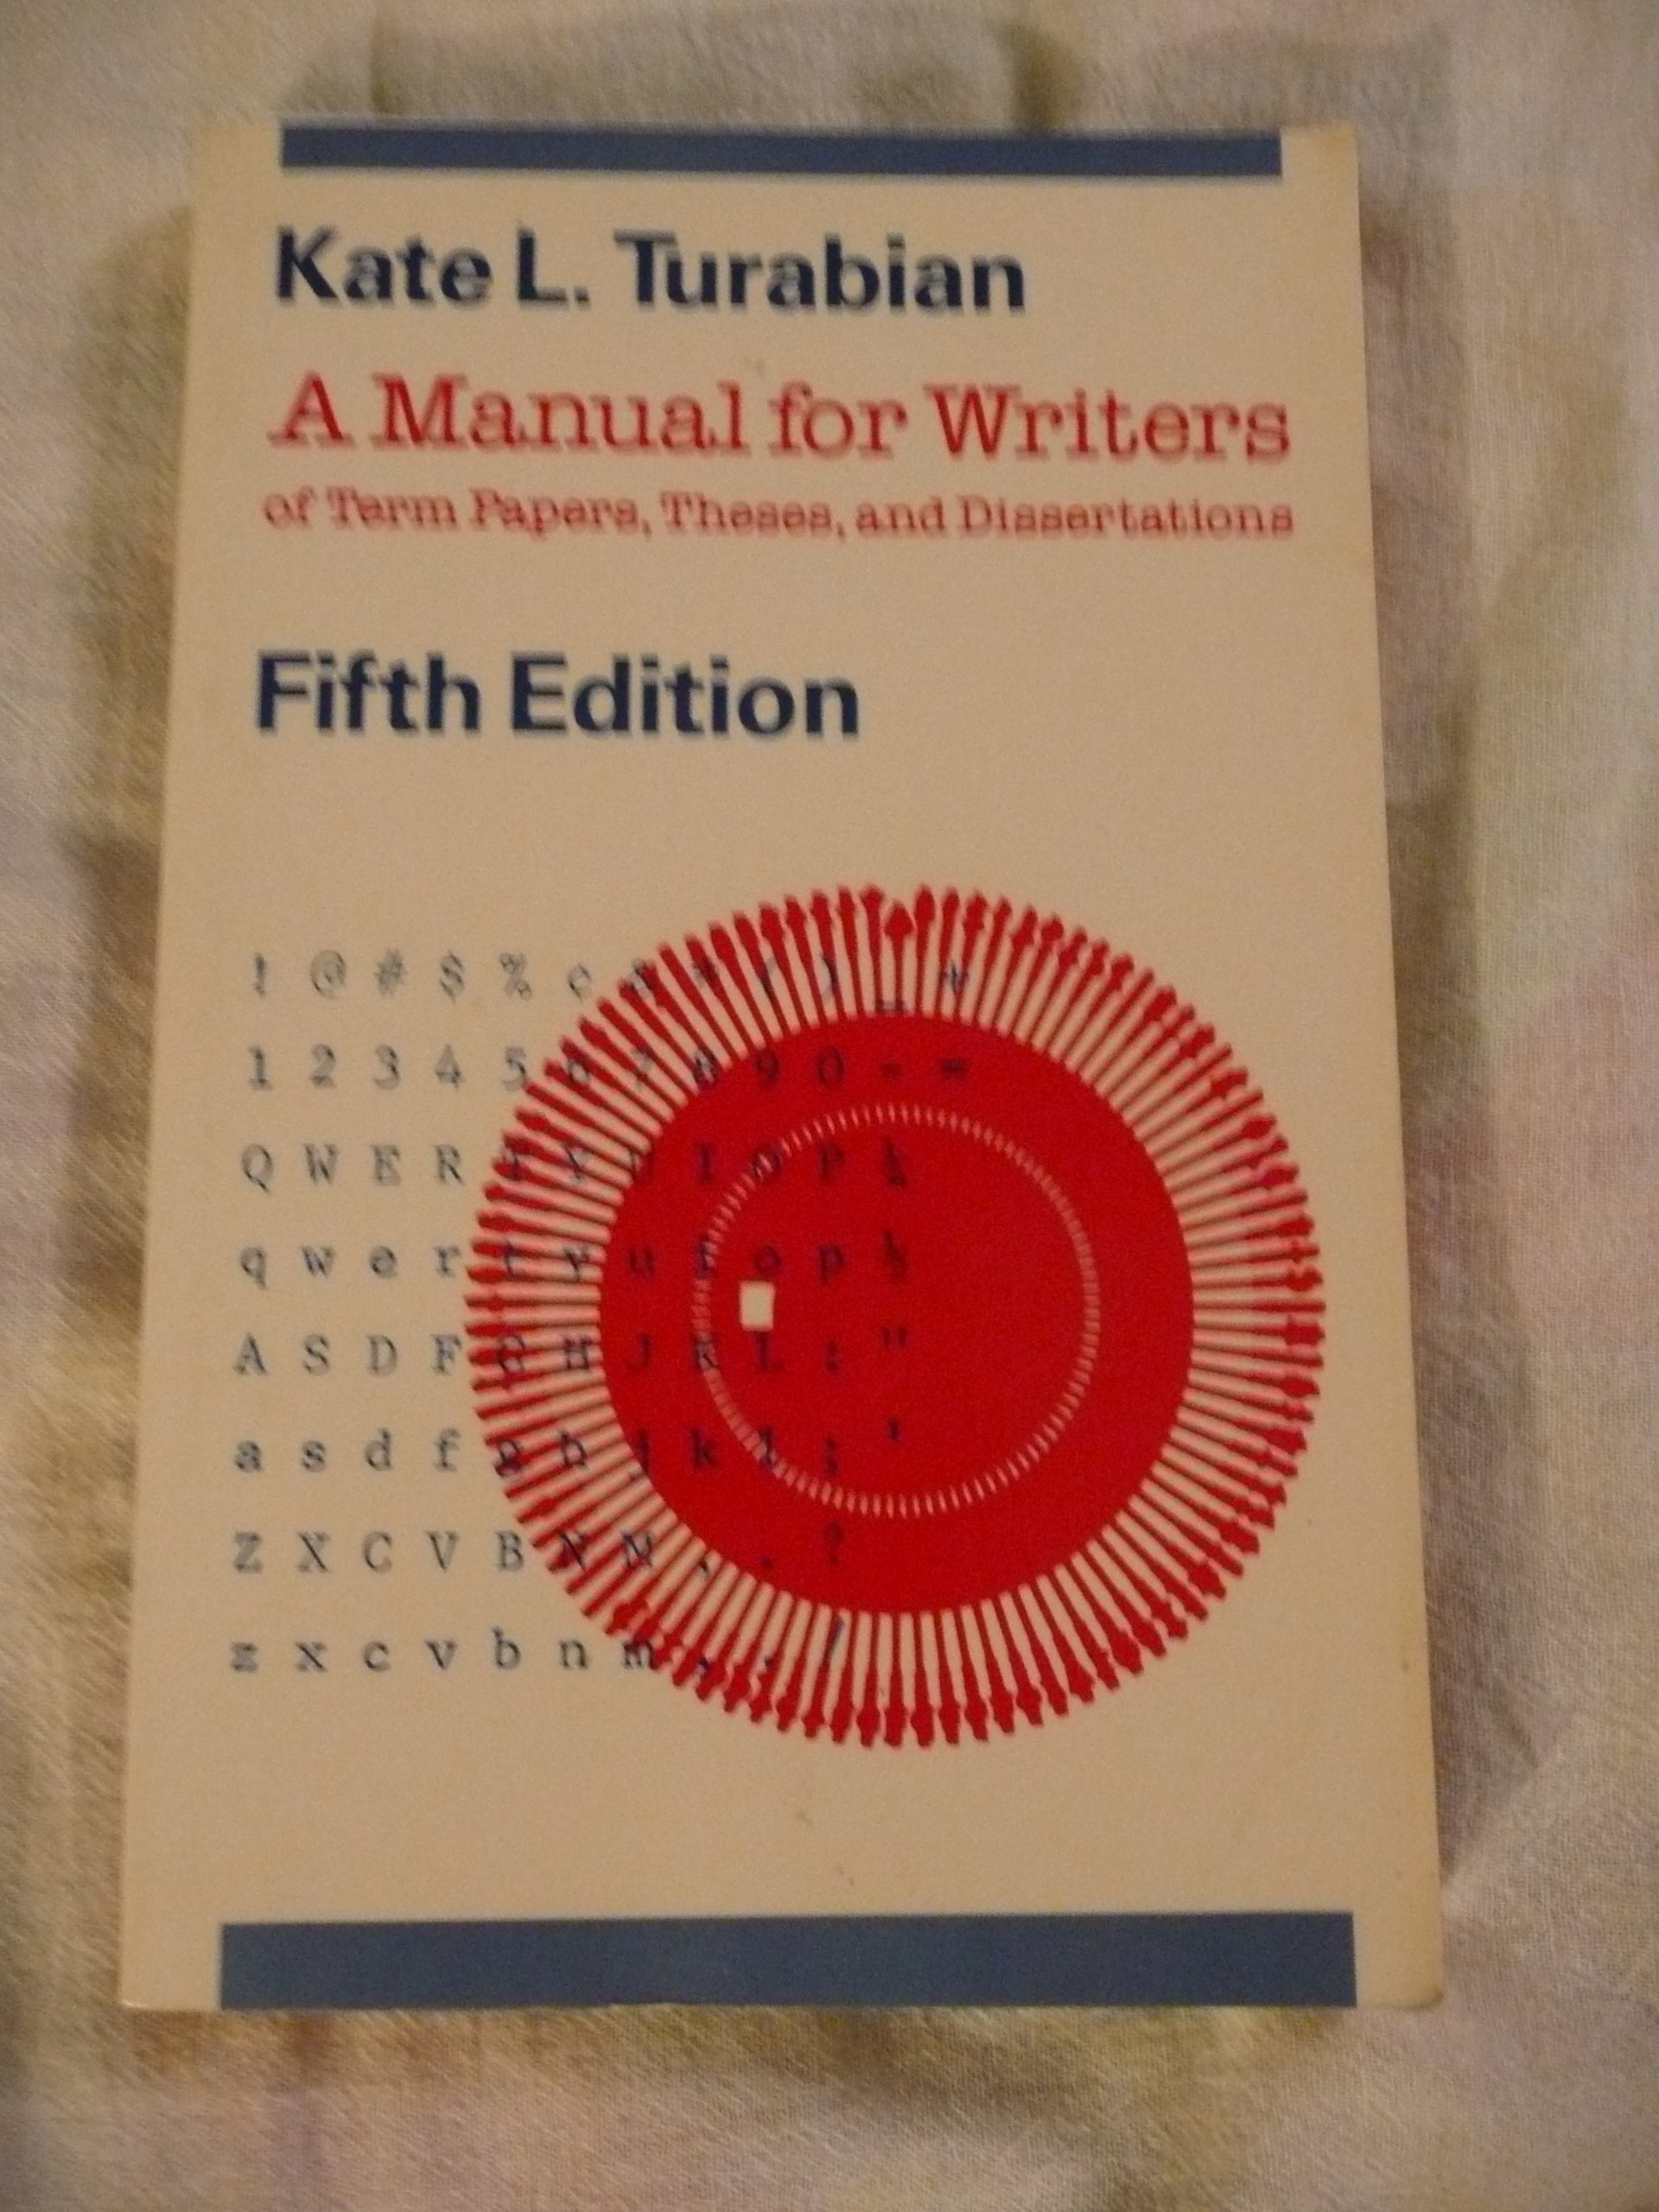 020 91nltv7olql Research Paper Manual For Writers Of Papers Theses And Sensational A Dissertations Ed. 8 8th Edition Ninth Pdf Full